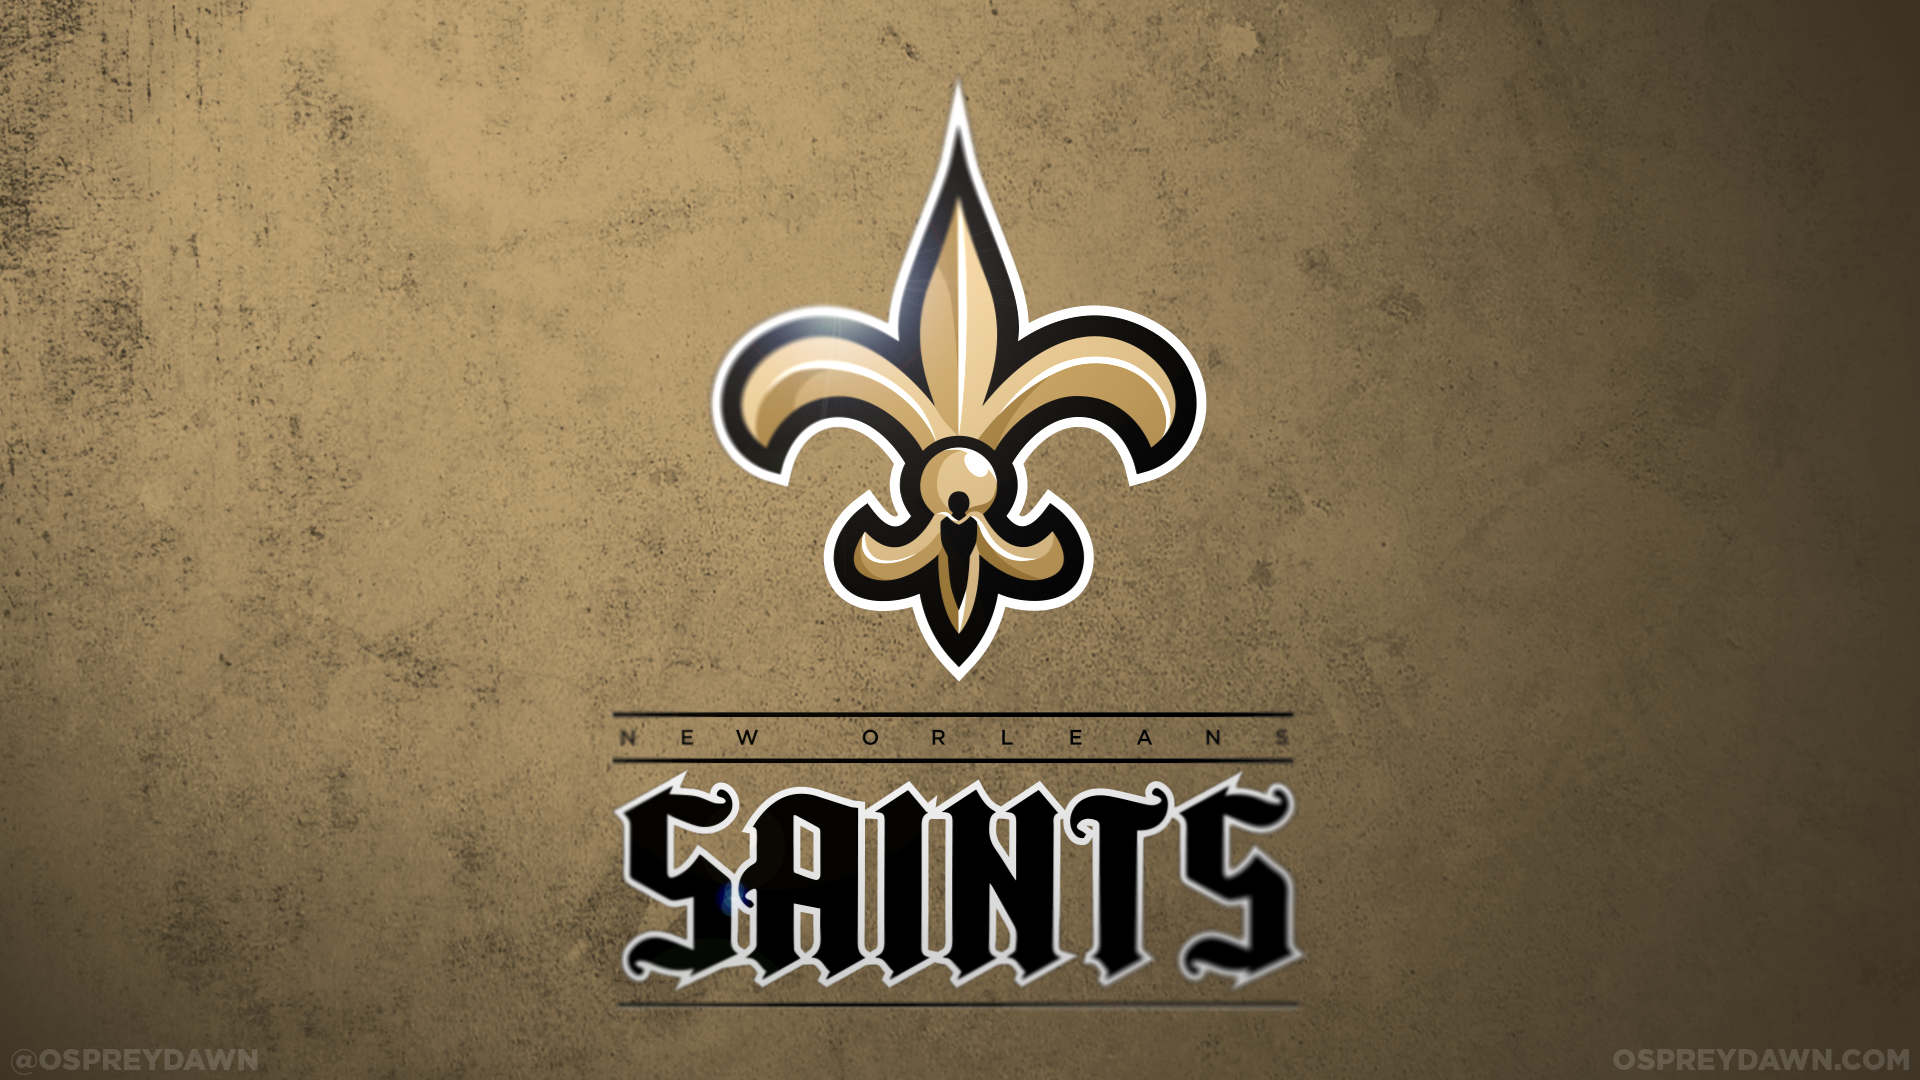 (TOP &) FLOP della stagione 2014: New Orleans Saints